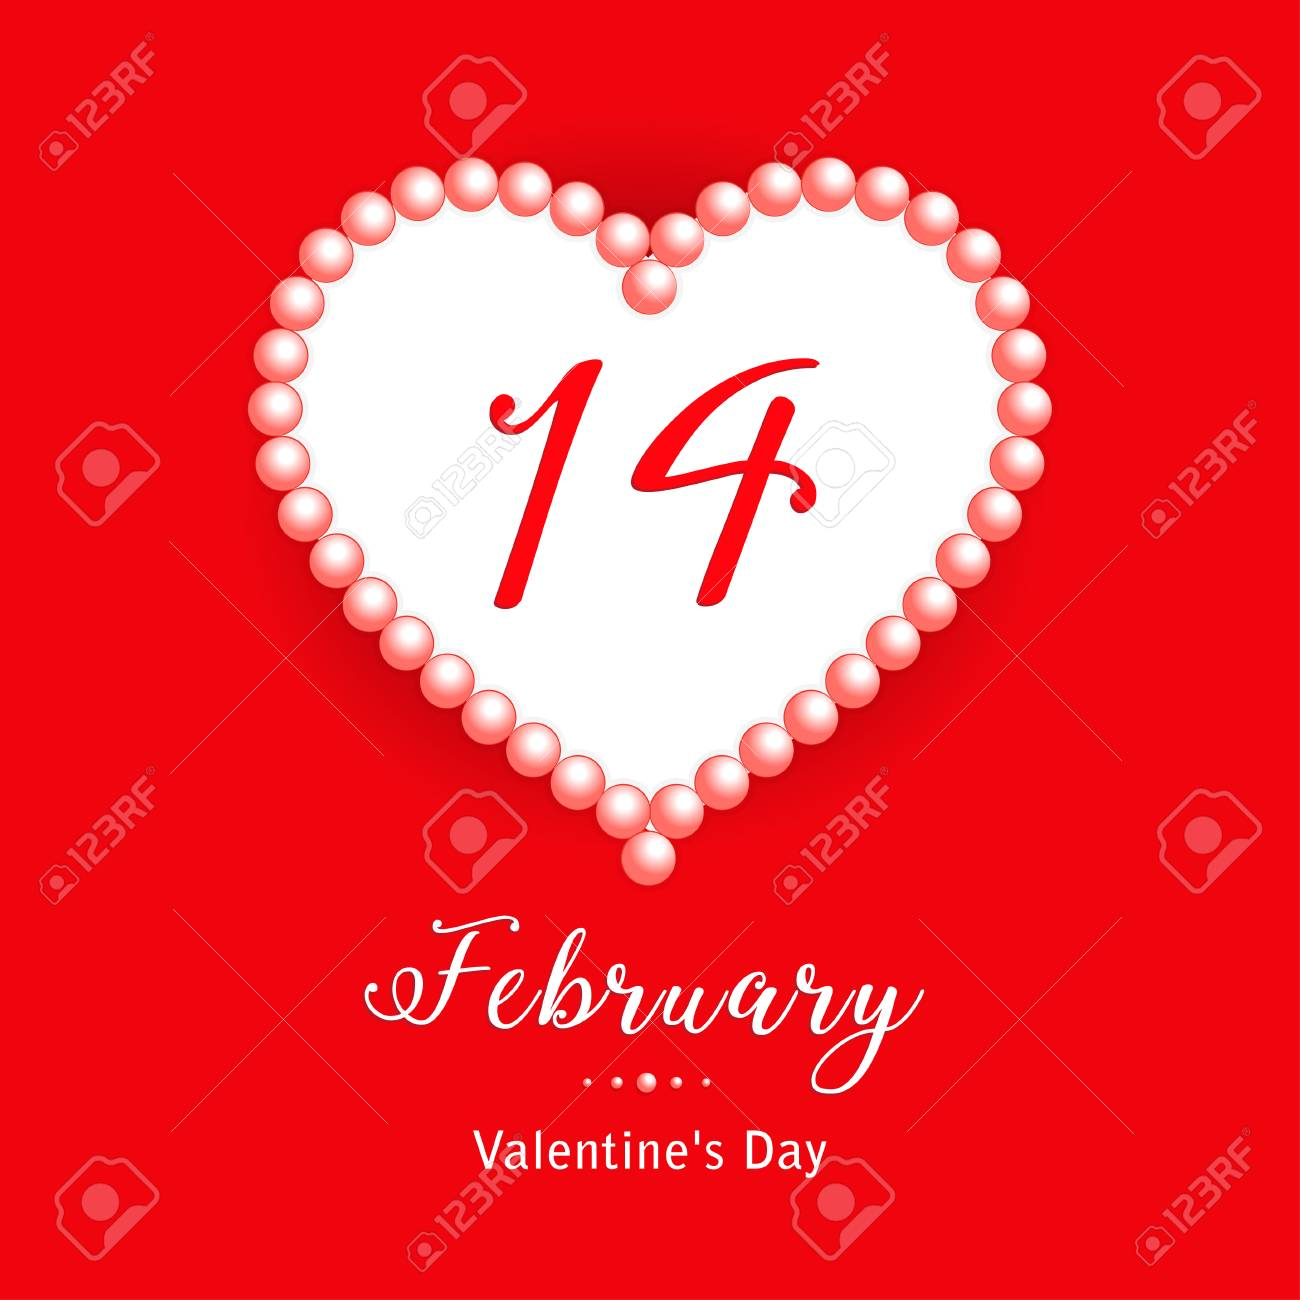 14 February Calendar Date In Heart With Pearl On Red Background